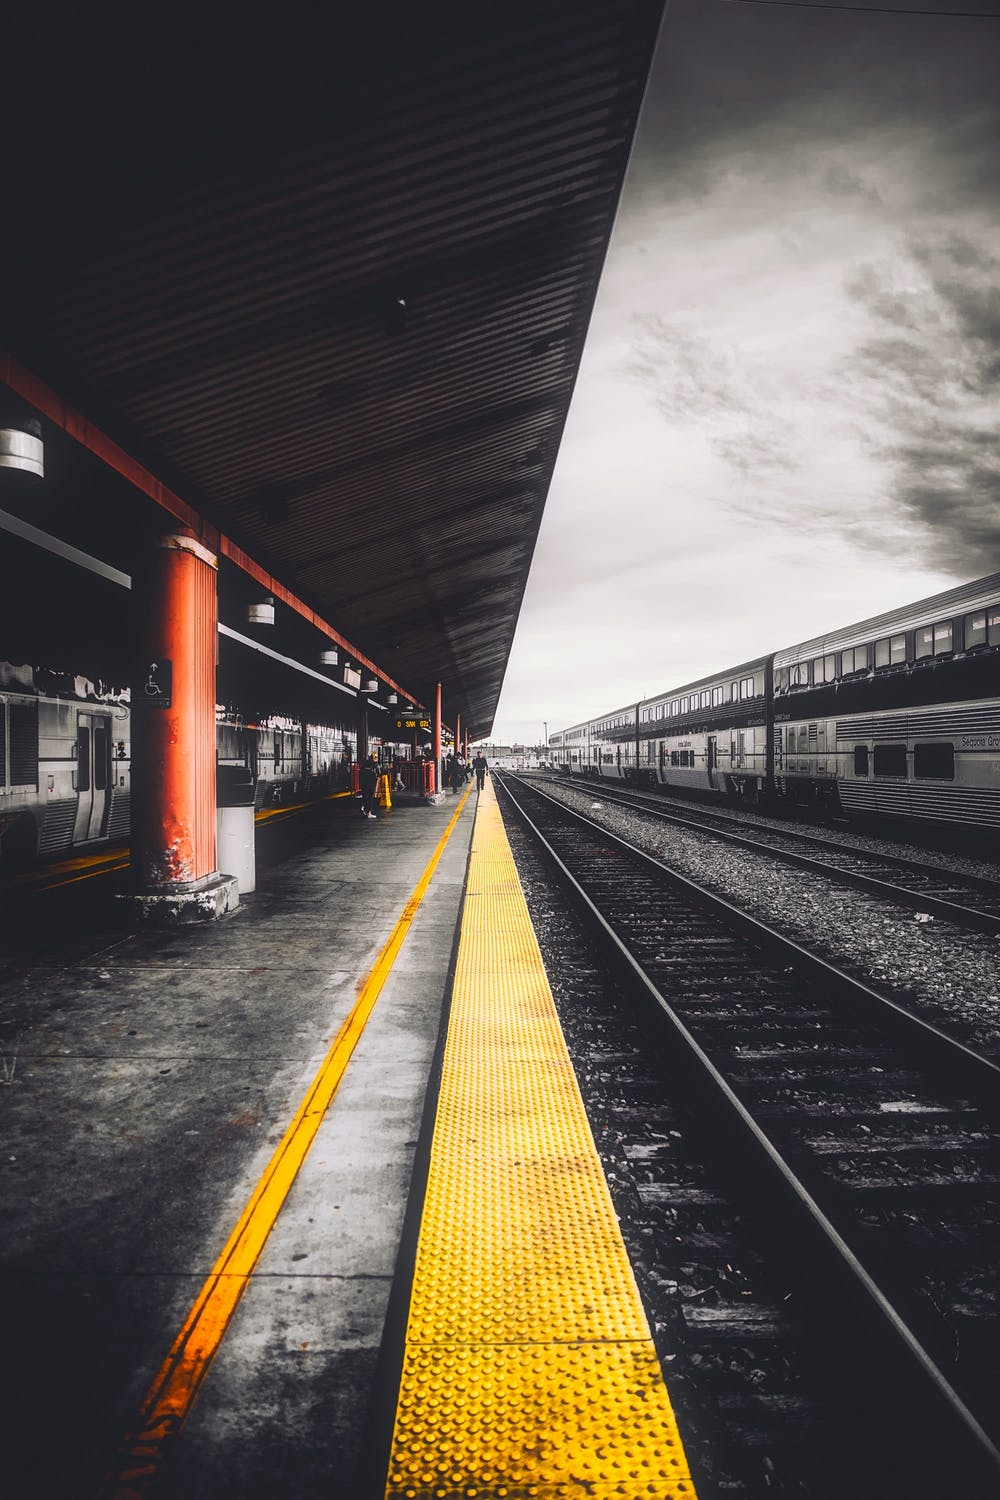 A train station | Photo: Pexels